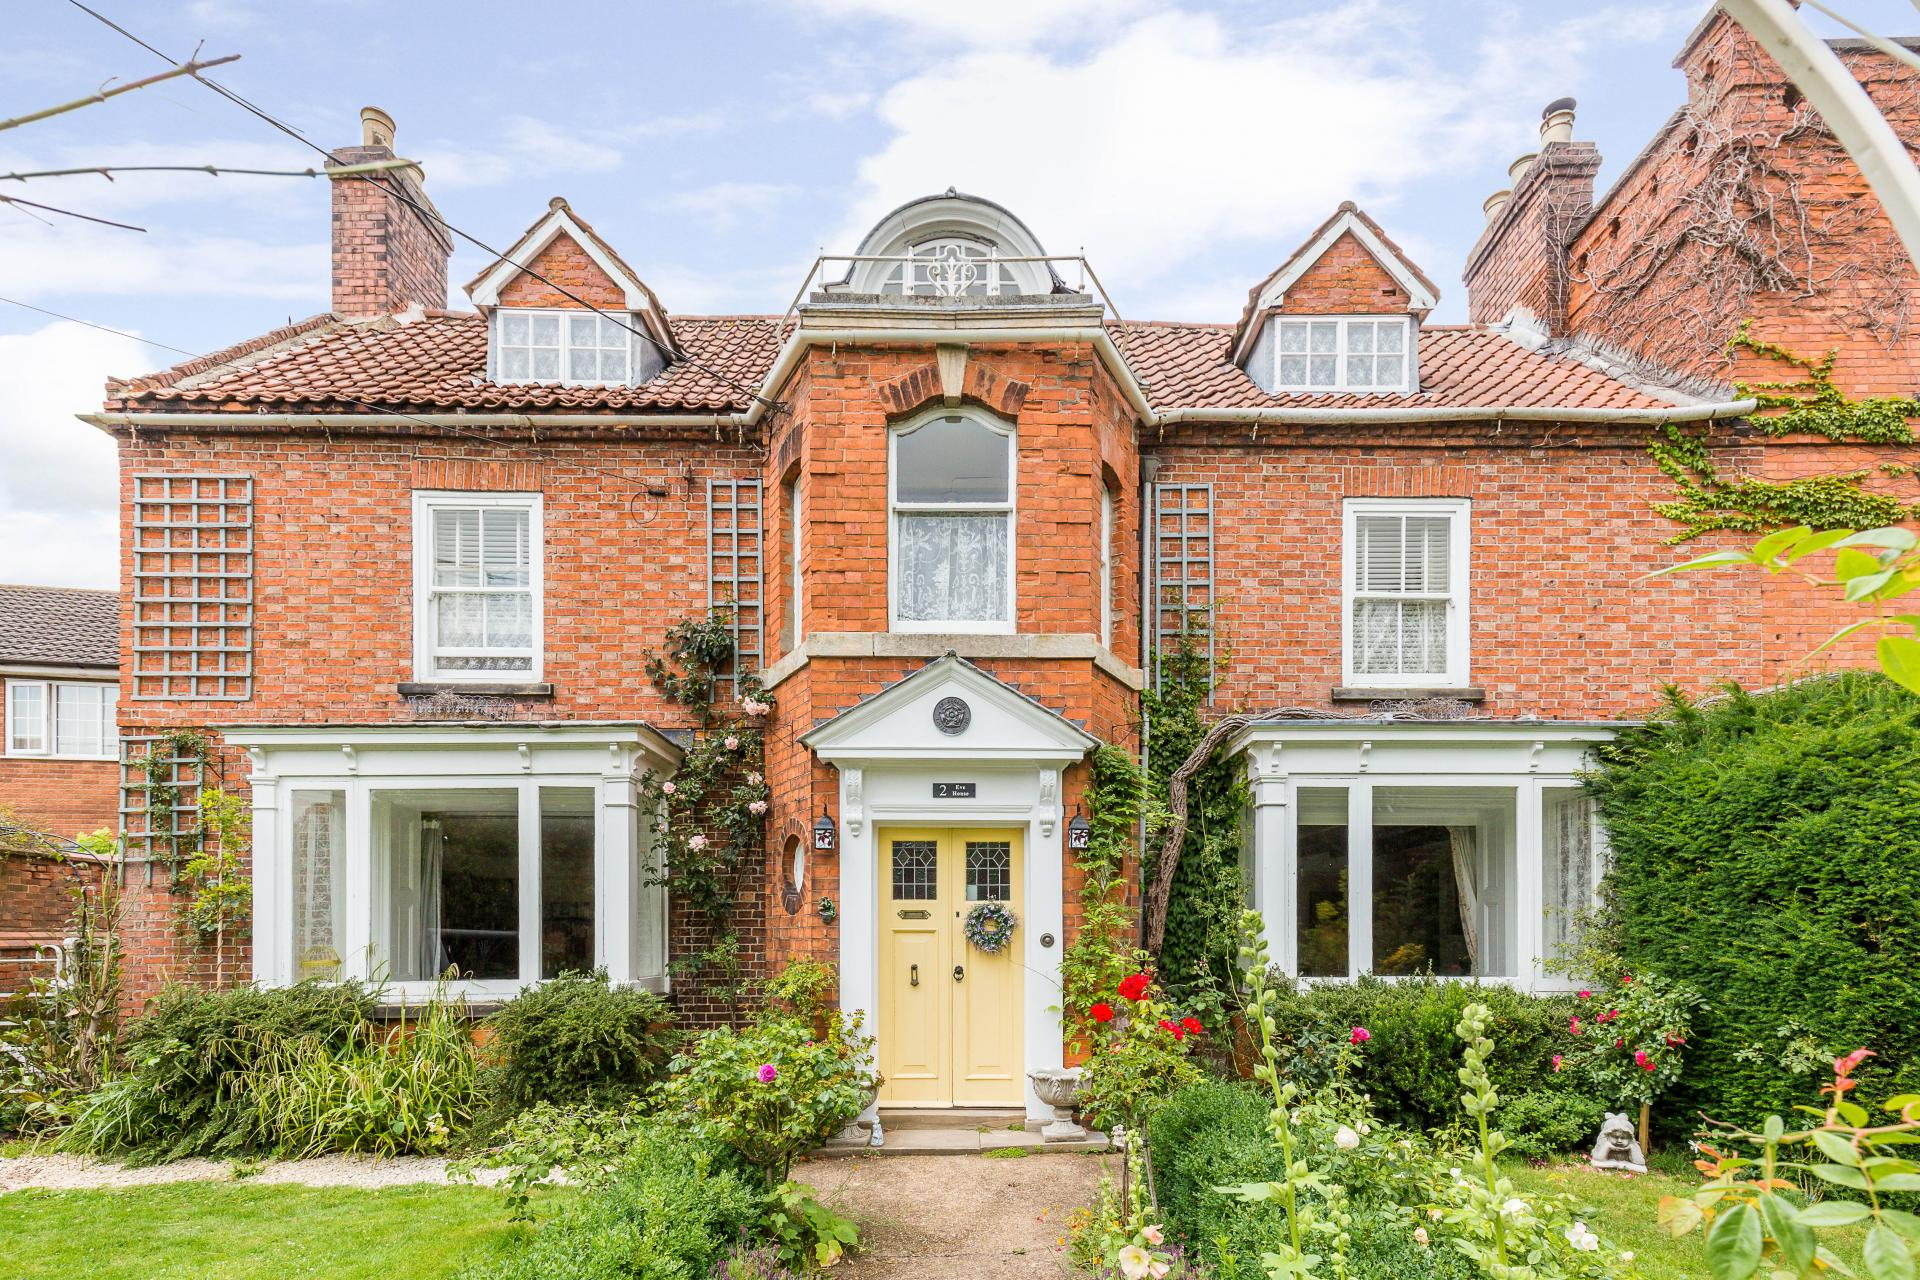 Grade II Listed historical period house in England